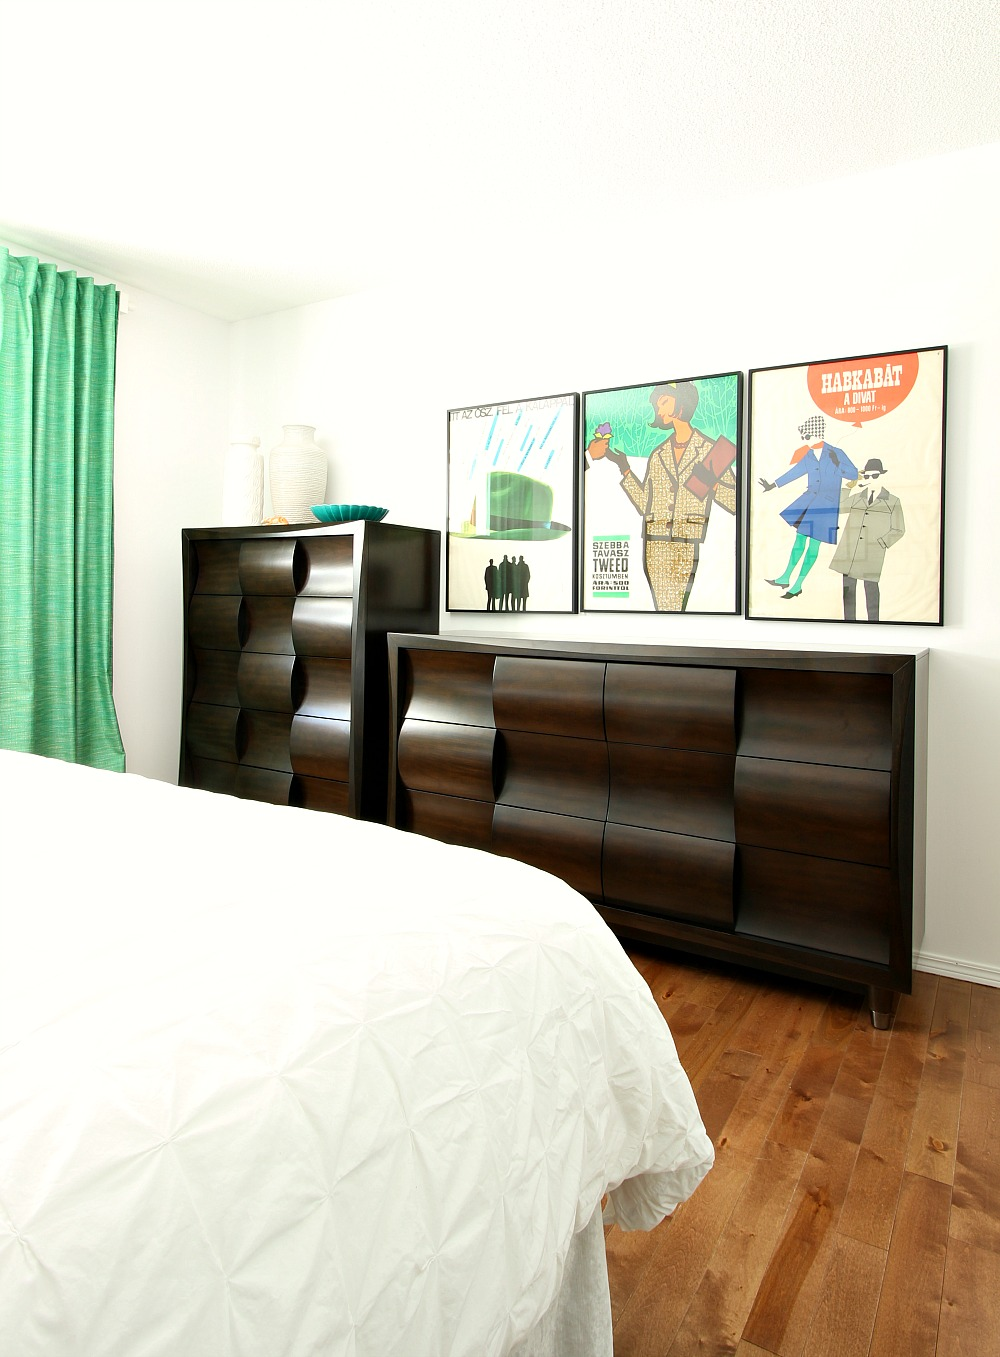 Mid-Century Modern Inspired Bedroom Furniture with Mid-Century Modern Poster Art